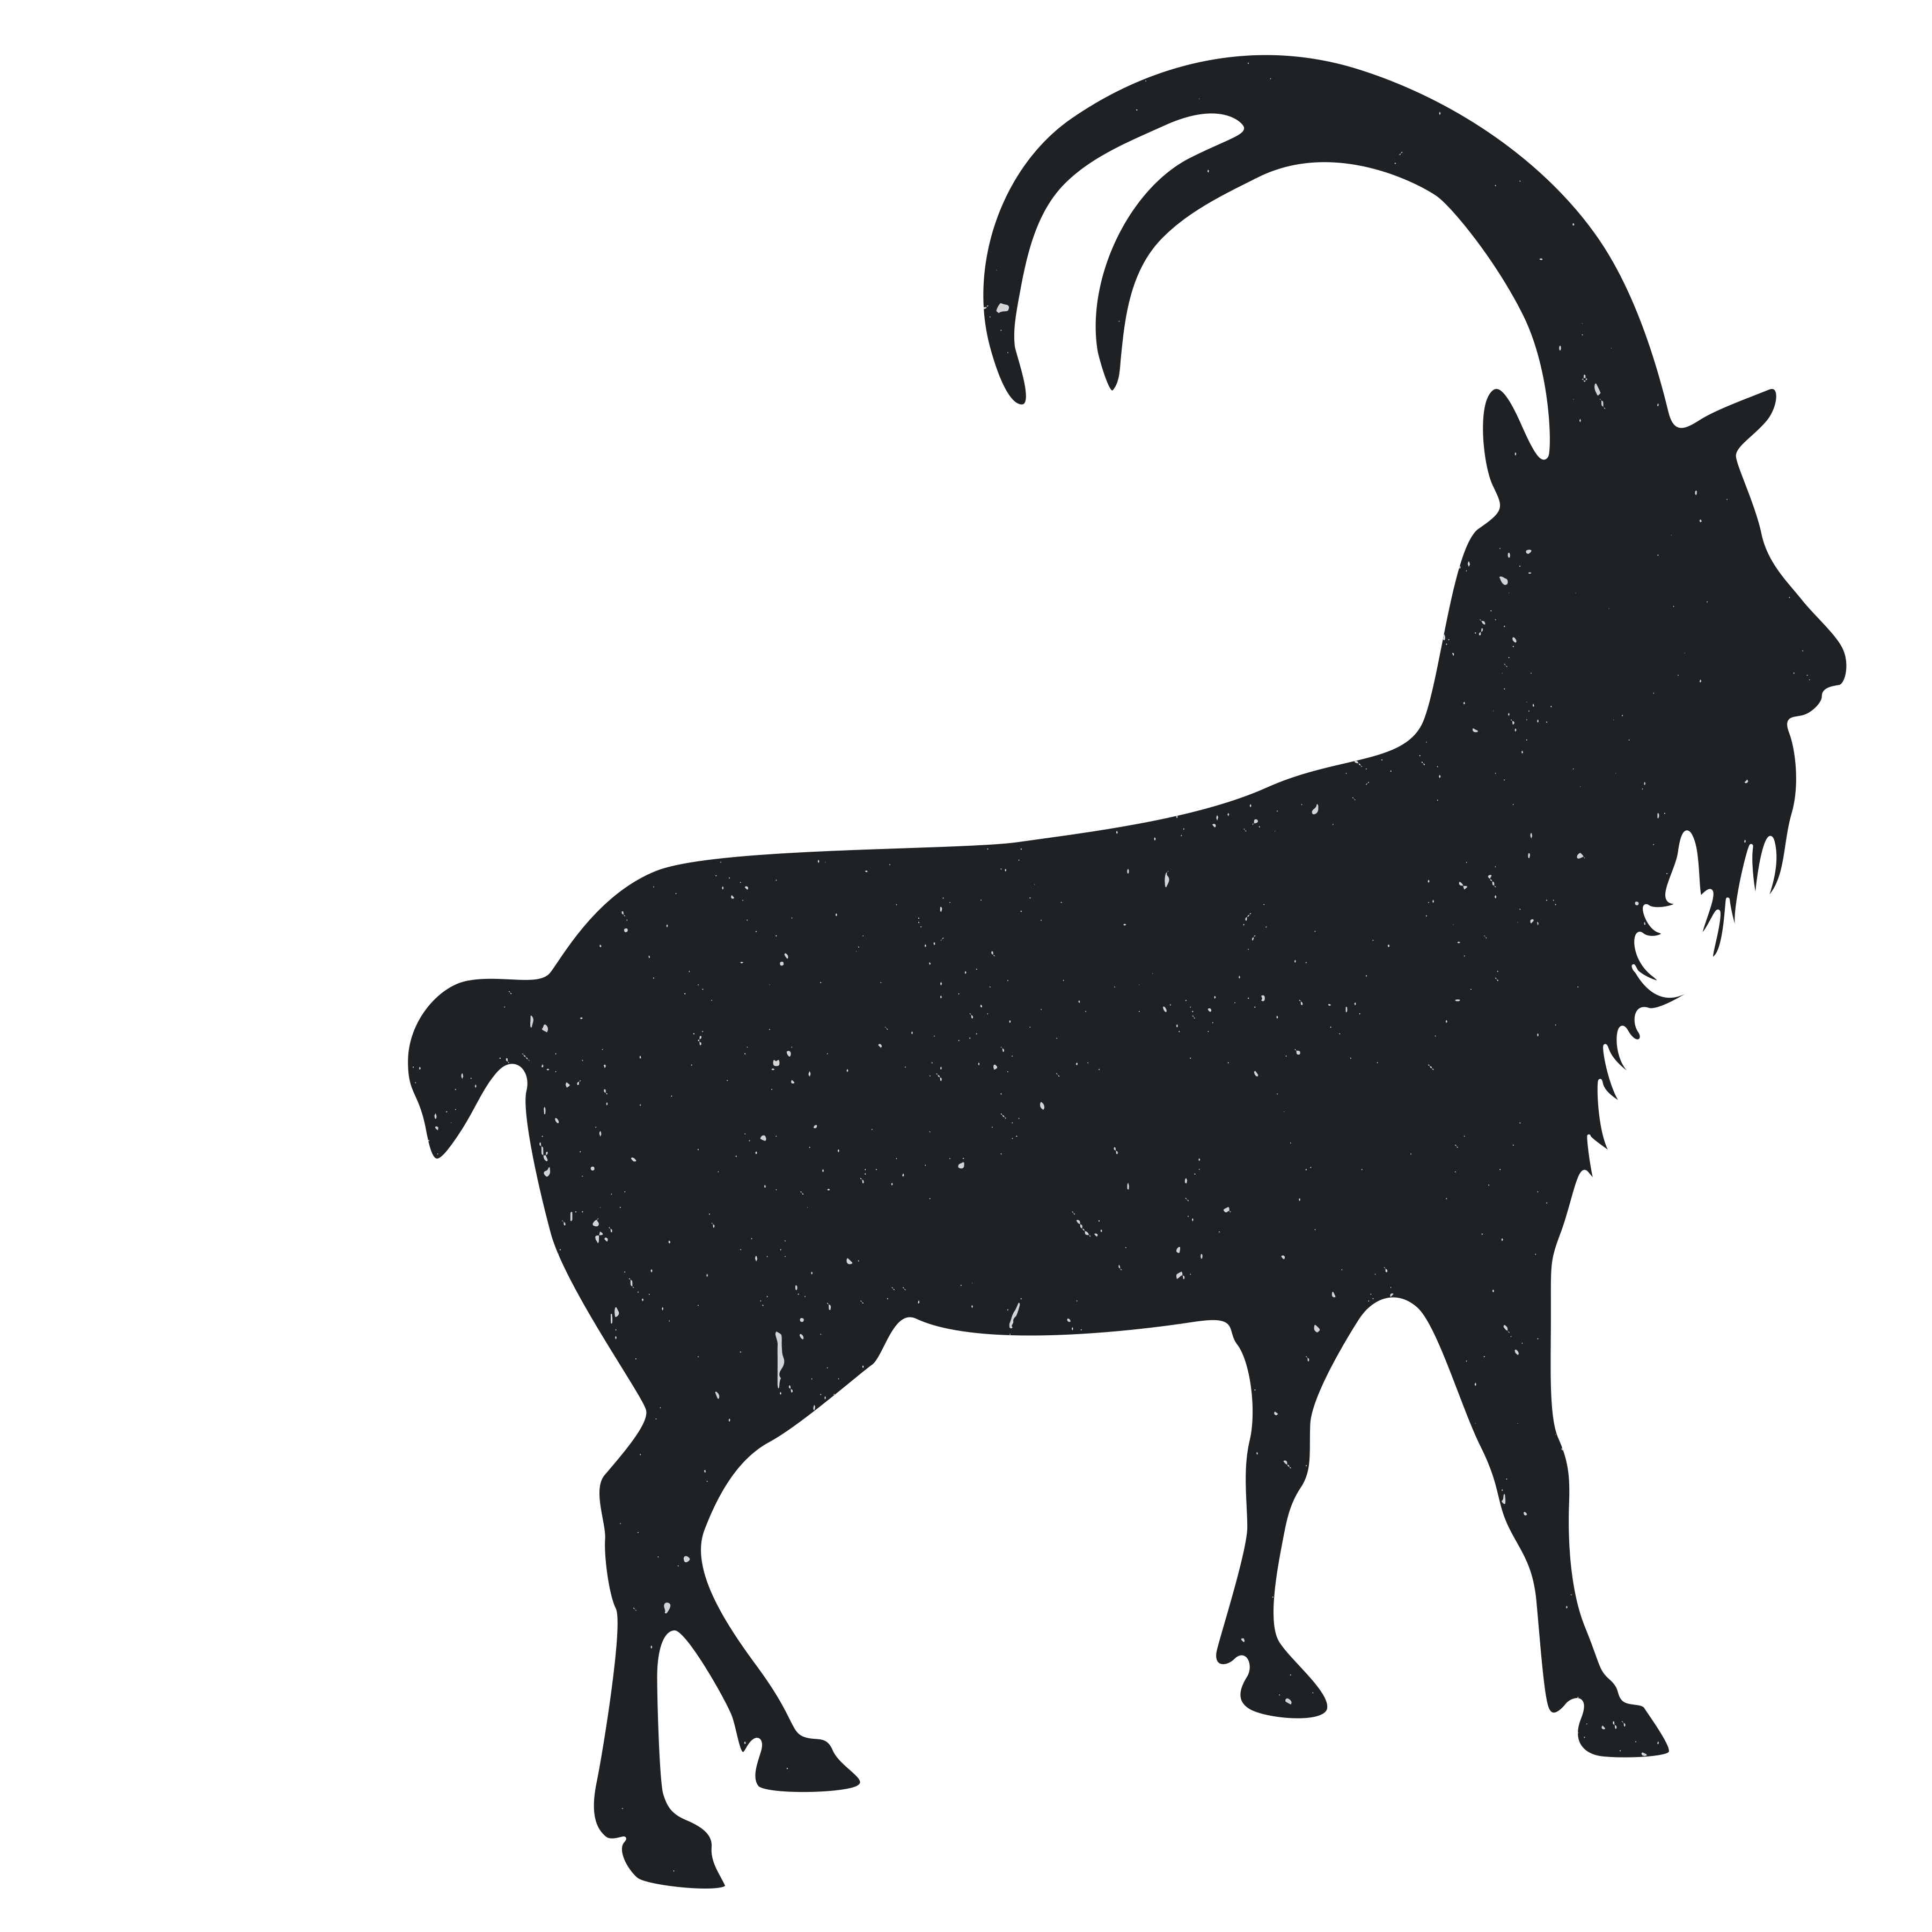 Mountain goat clipart clipart images gallery for free.